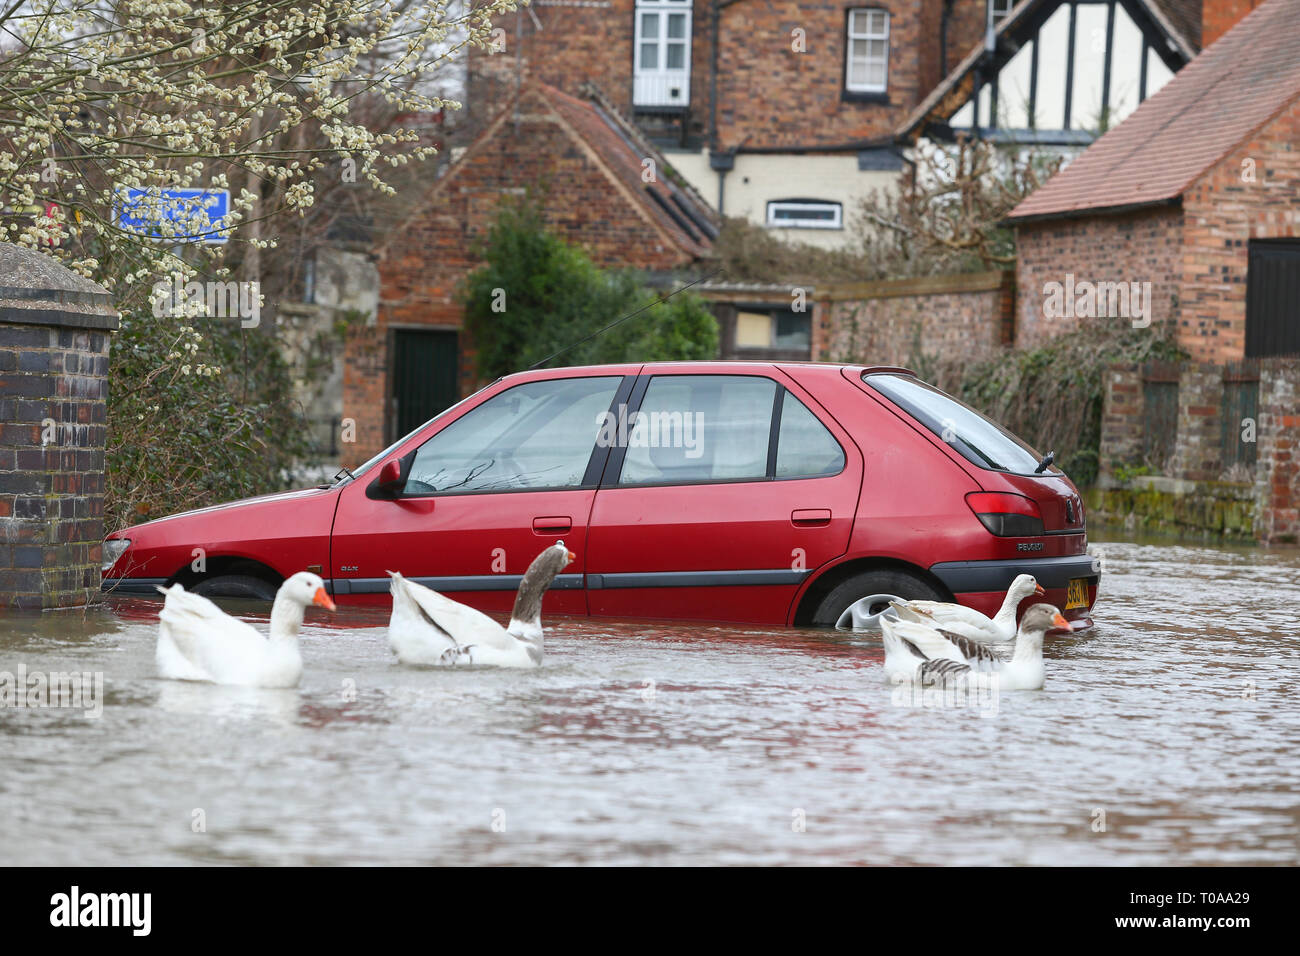 Bridgnorth, Shropshire, UK. 19th March, 2019. A car is stuck in the River Severn floodwater in Bridgnorth town. Peter Lopeman/Alamy Live News - Stock Image